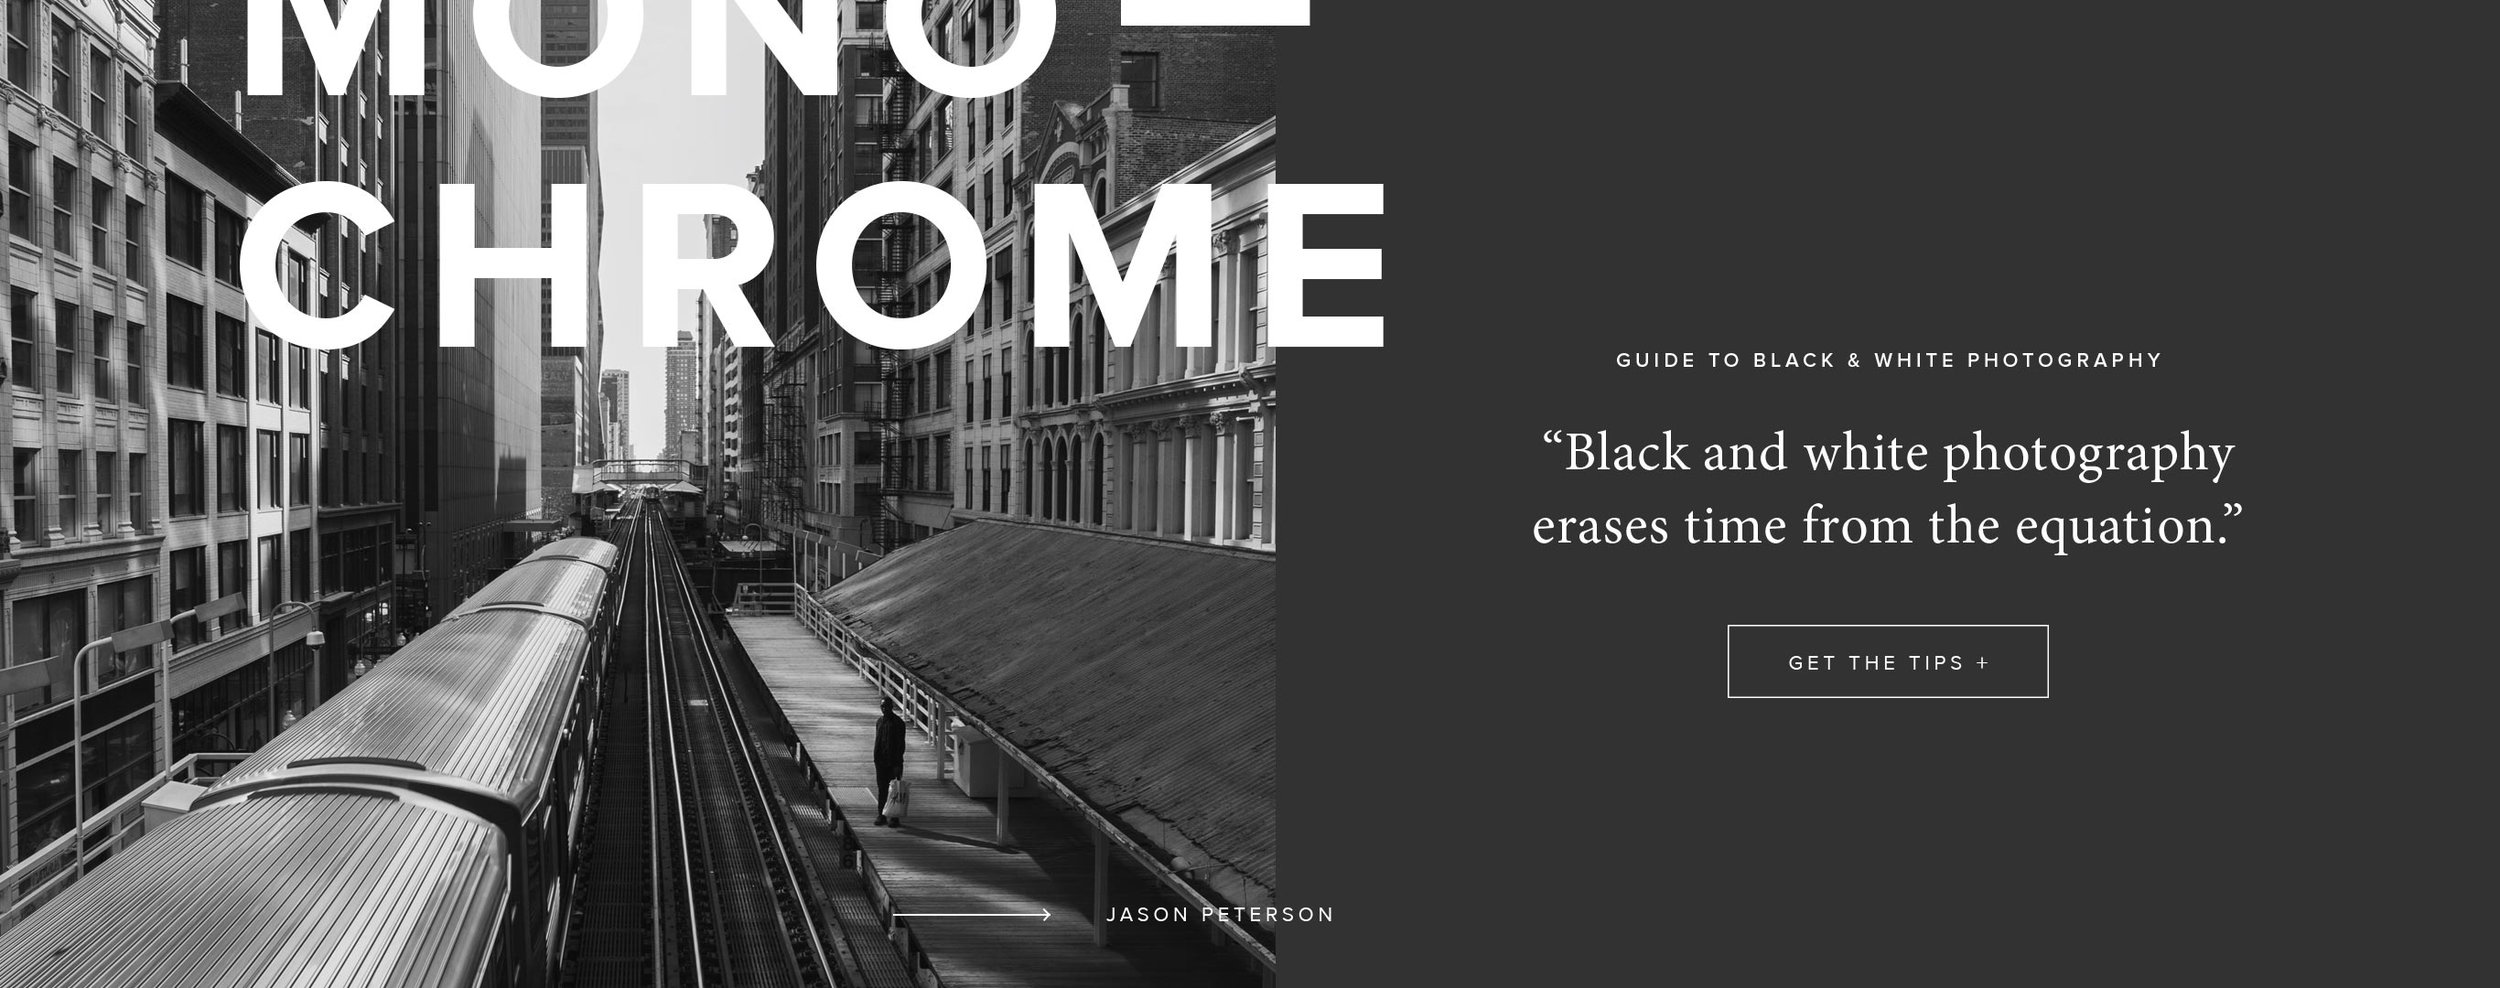 Content — Banner Design for Black & White Photography Tips